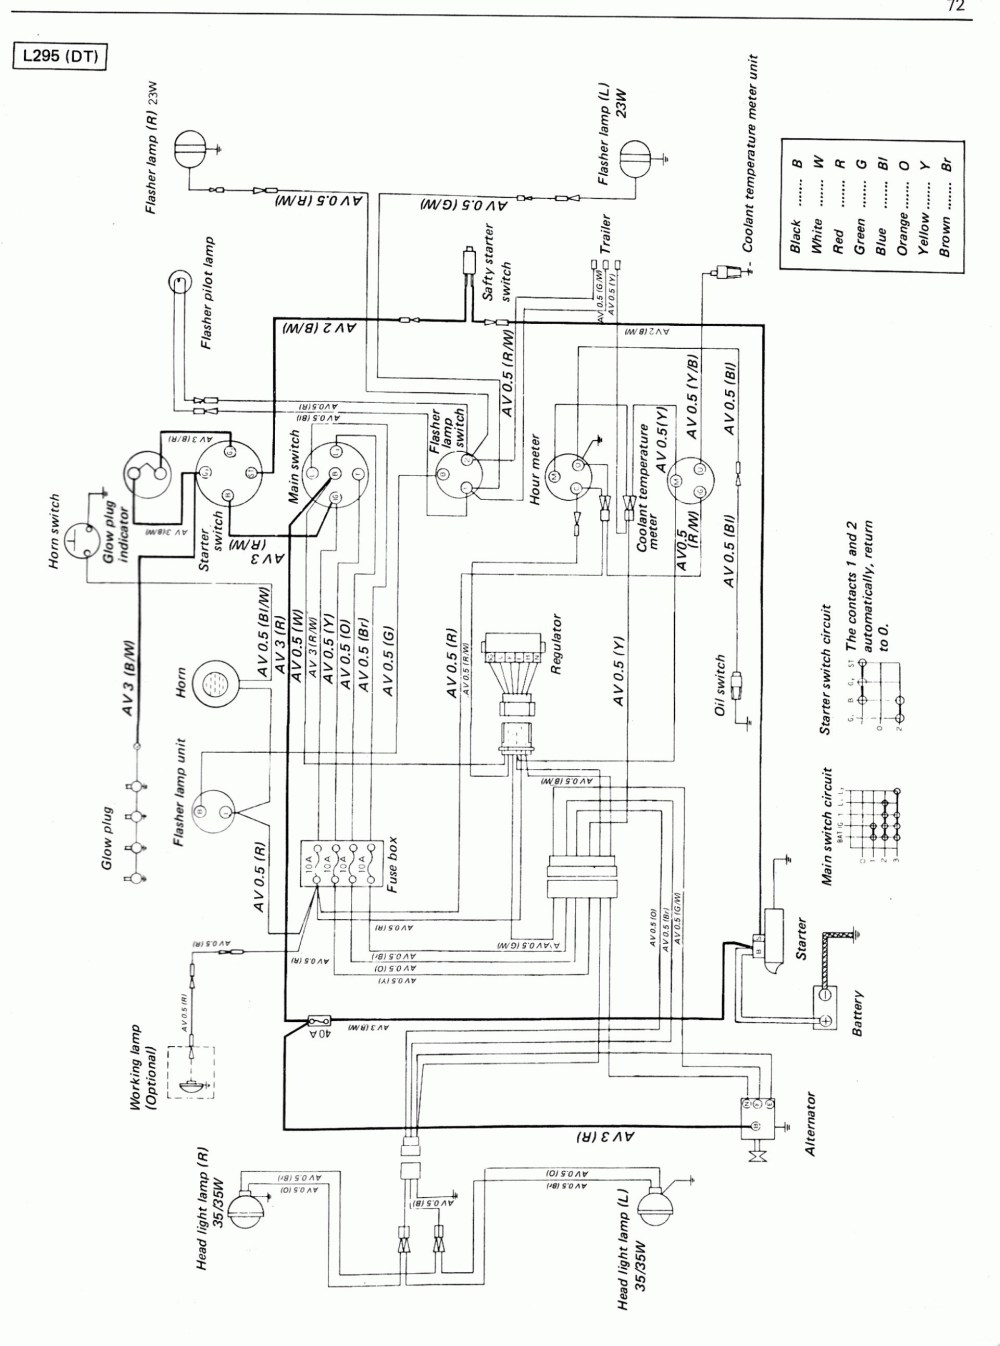 medium resolution of kubota tractor alternator wiring diagram wiring diagram yer kubota denso alternator wiring diagram